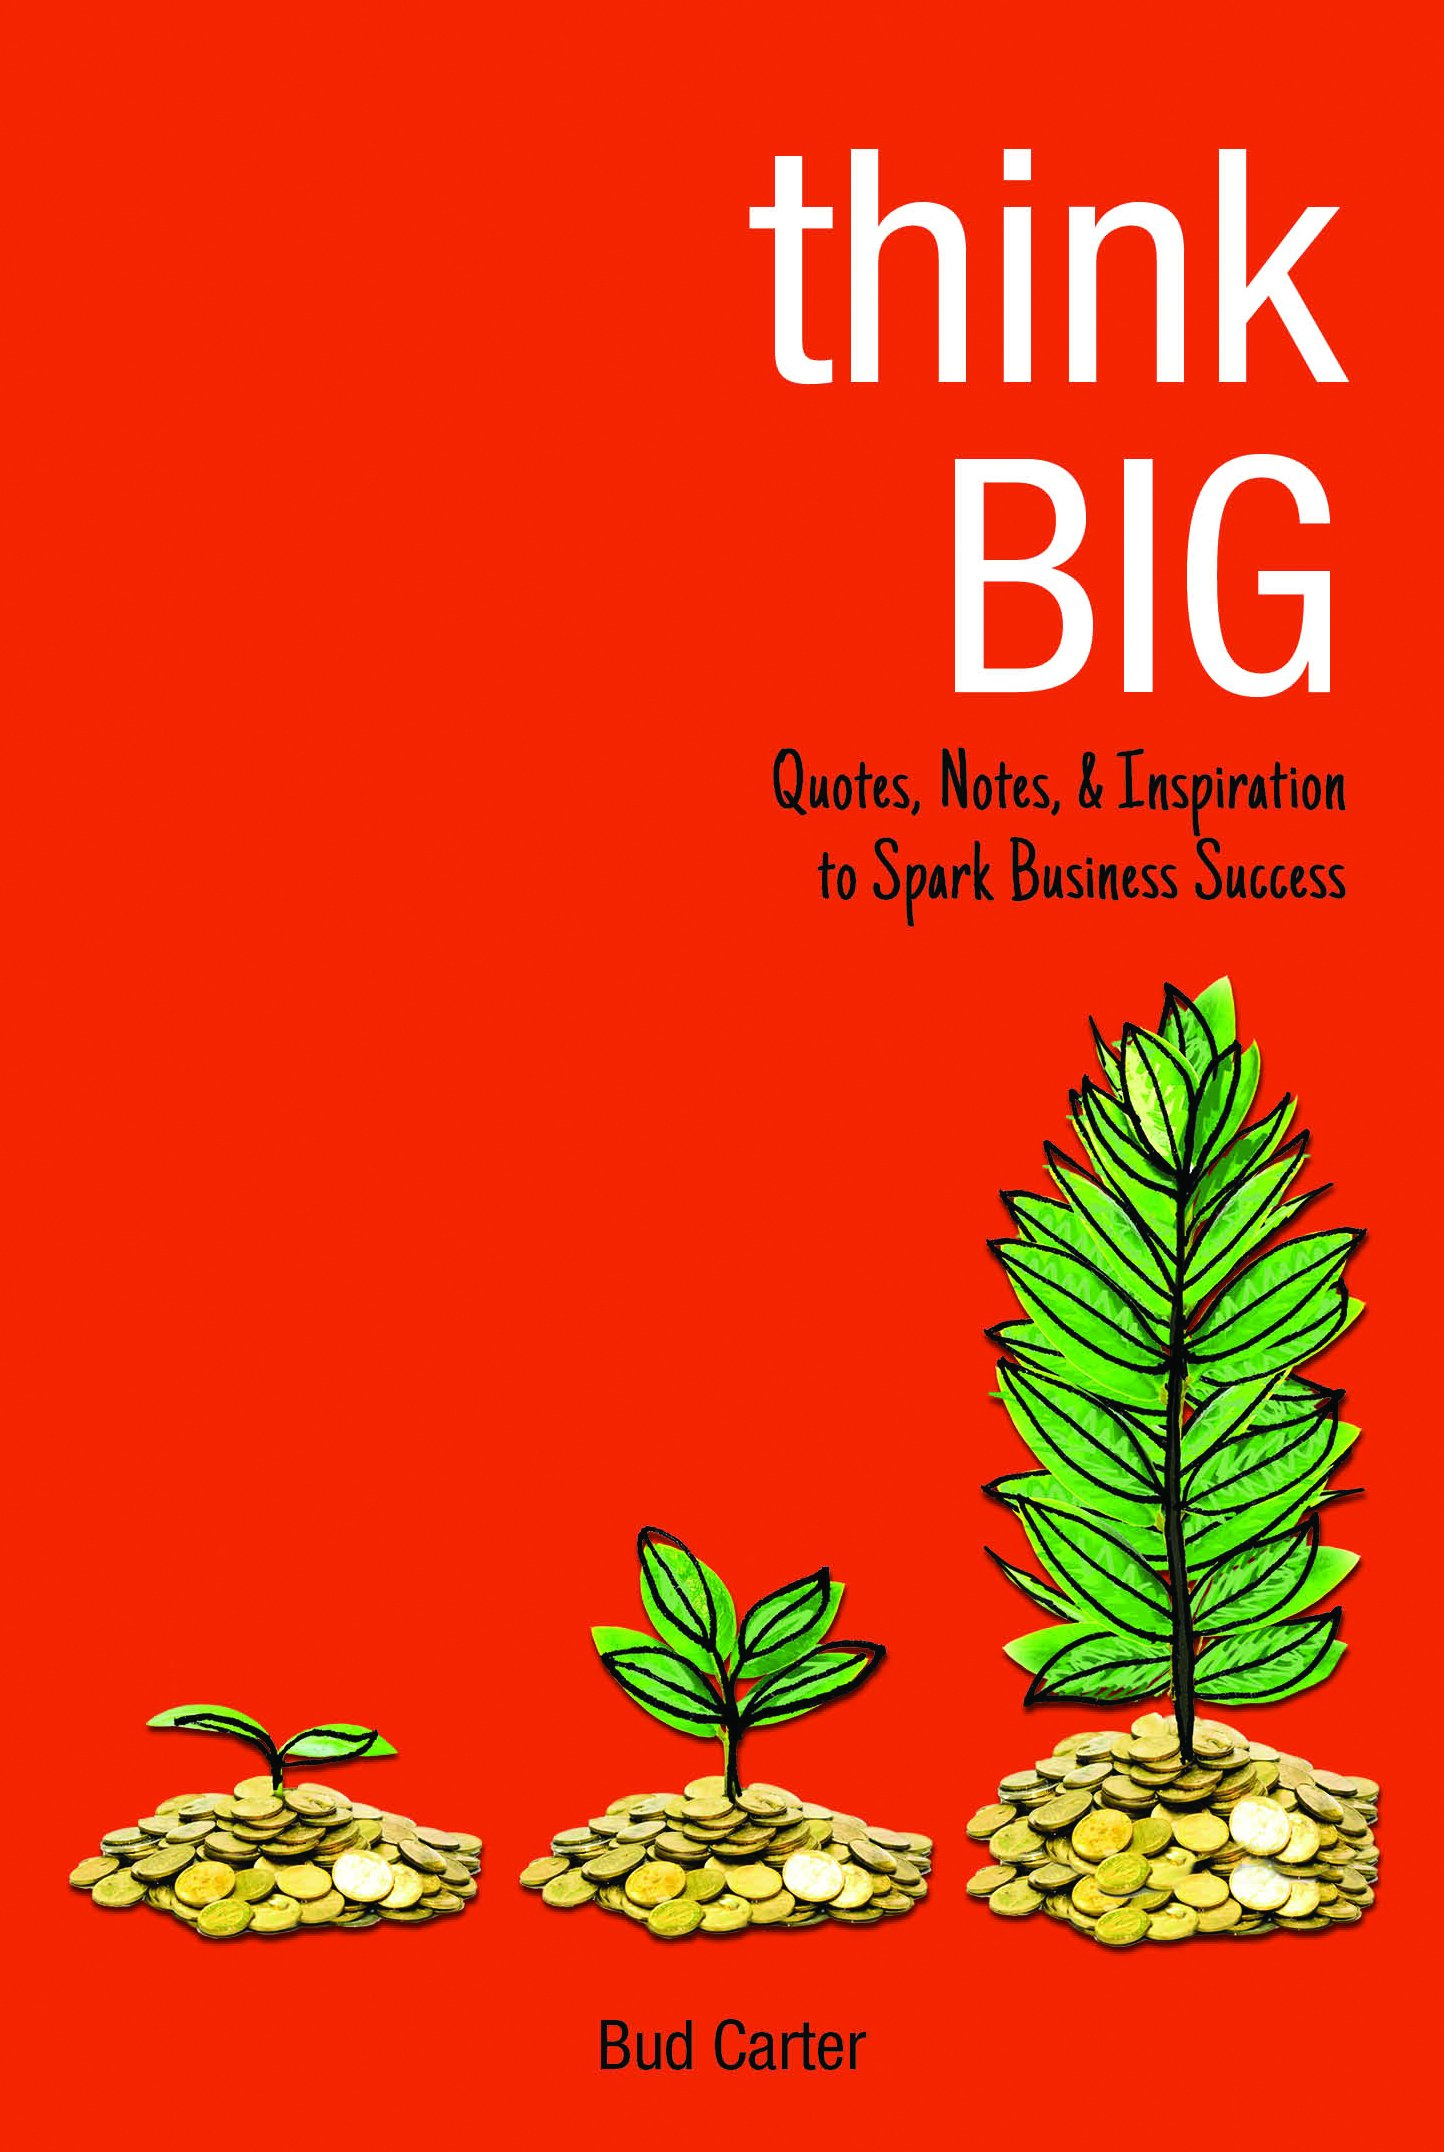 Download Think Big: Quotes, Notes, & Inspiration to Spark Business Success pdf